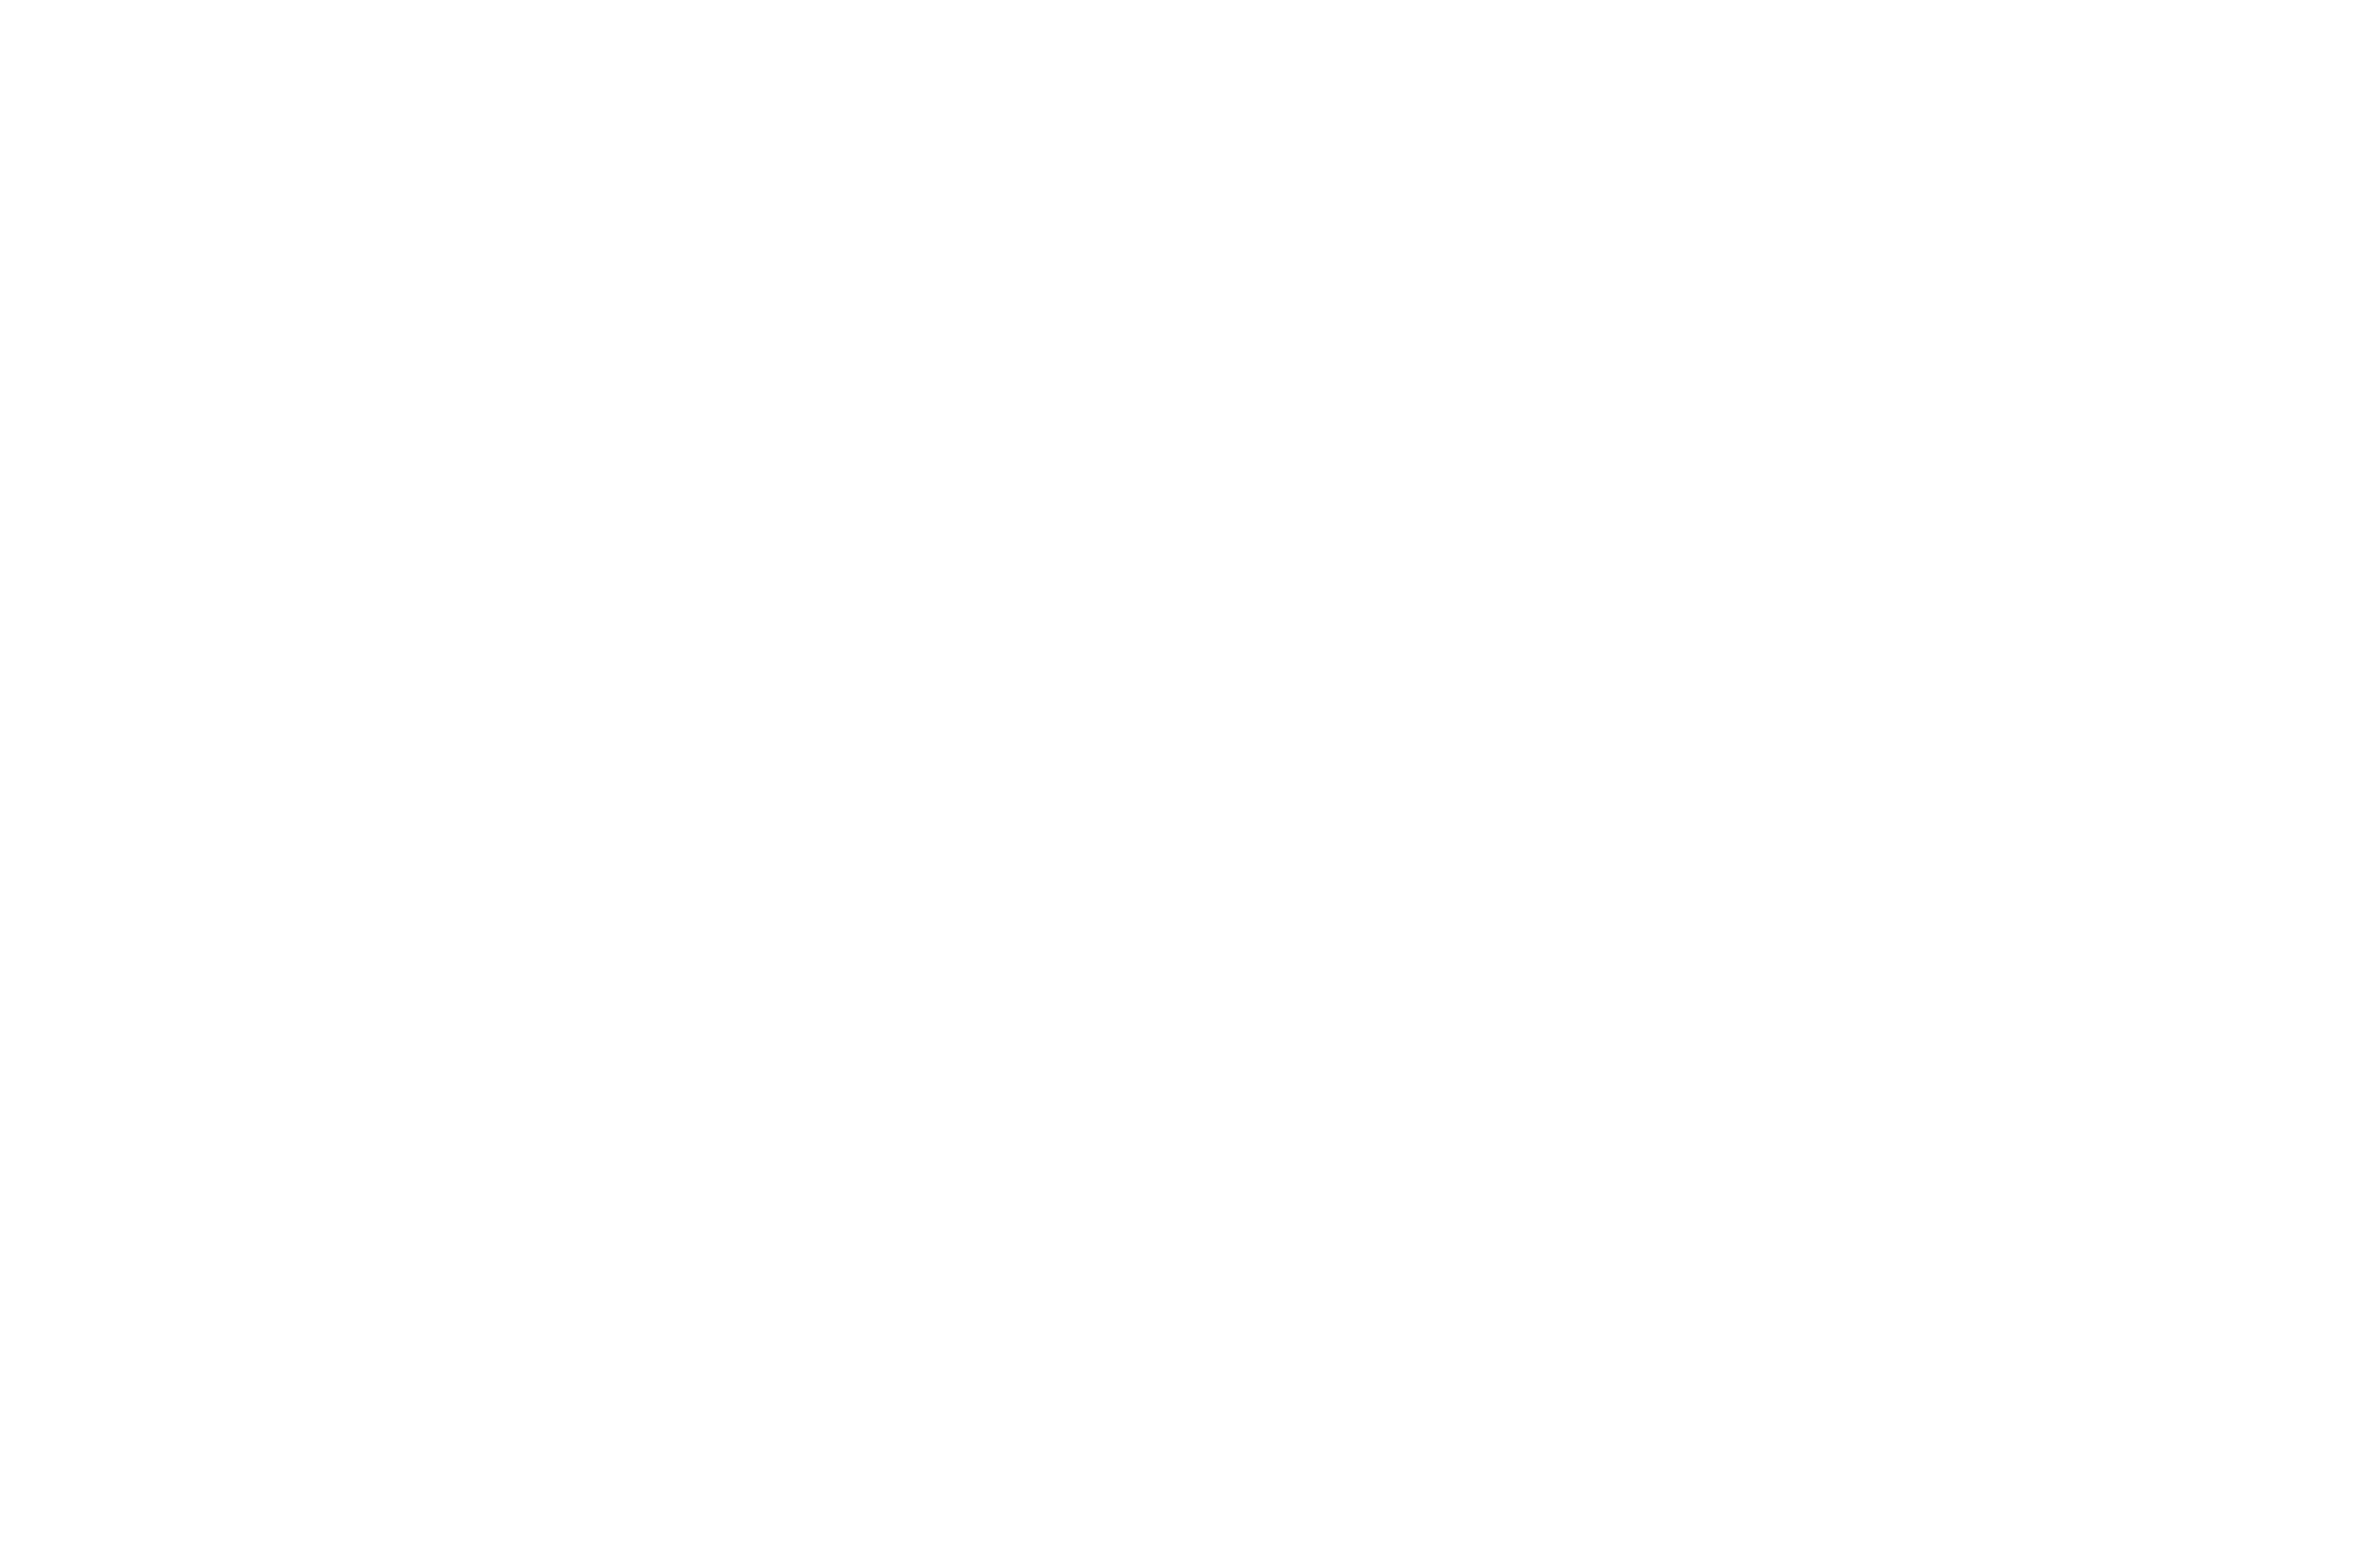 OfficialSelection-NORWICHFILMFESTIVAL-2019-1.png